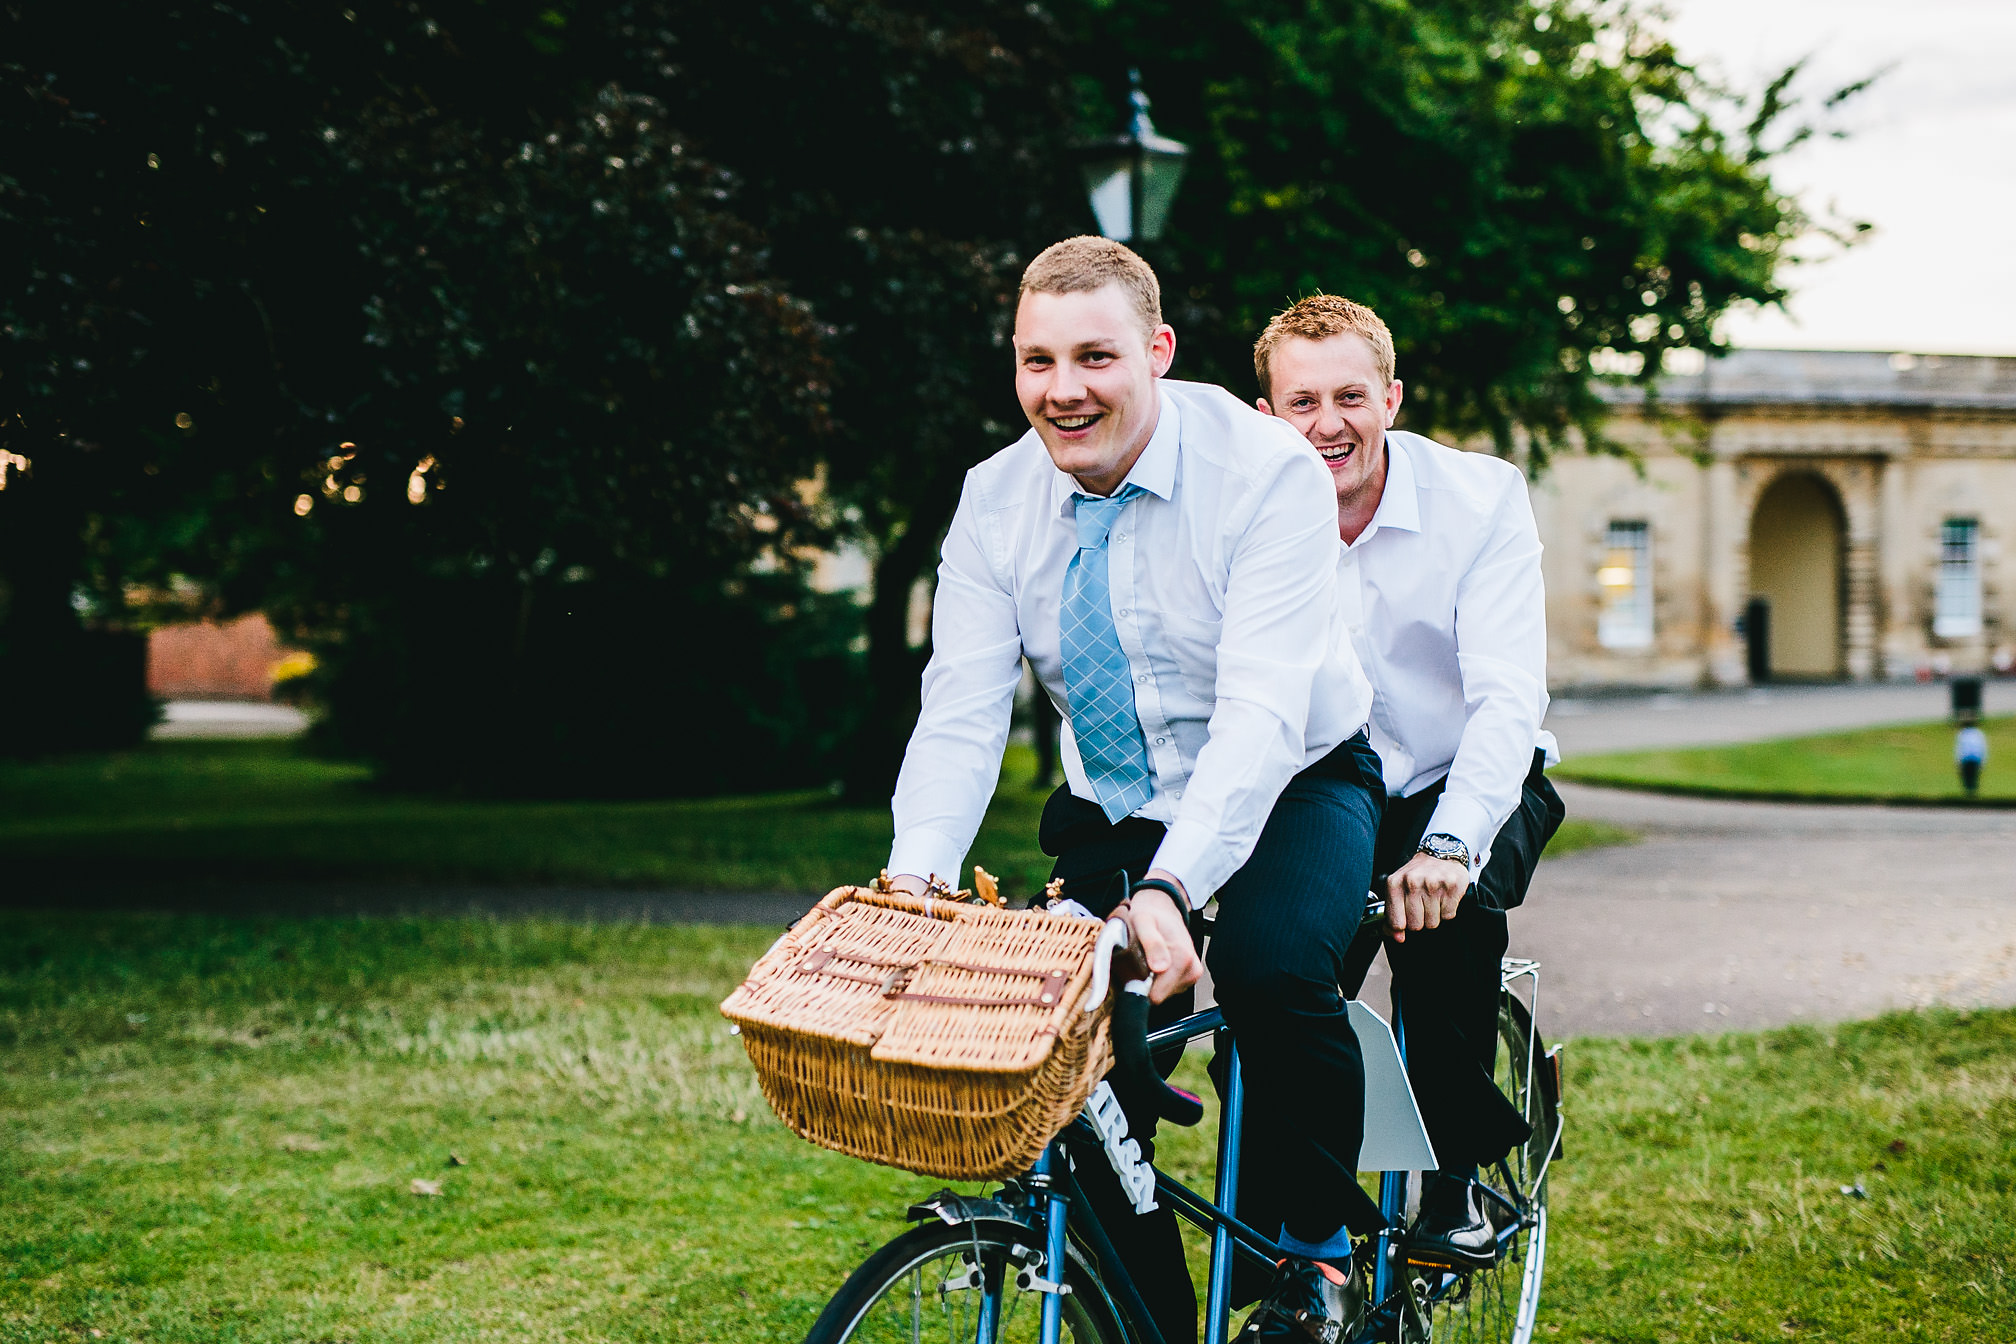 Wedding guests having fun on a tandem bike